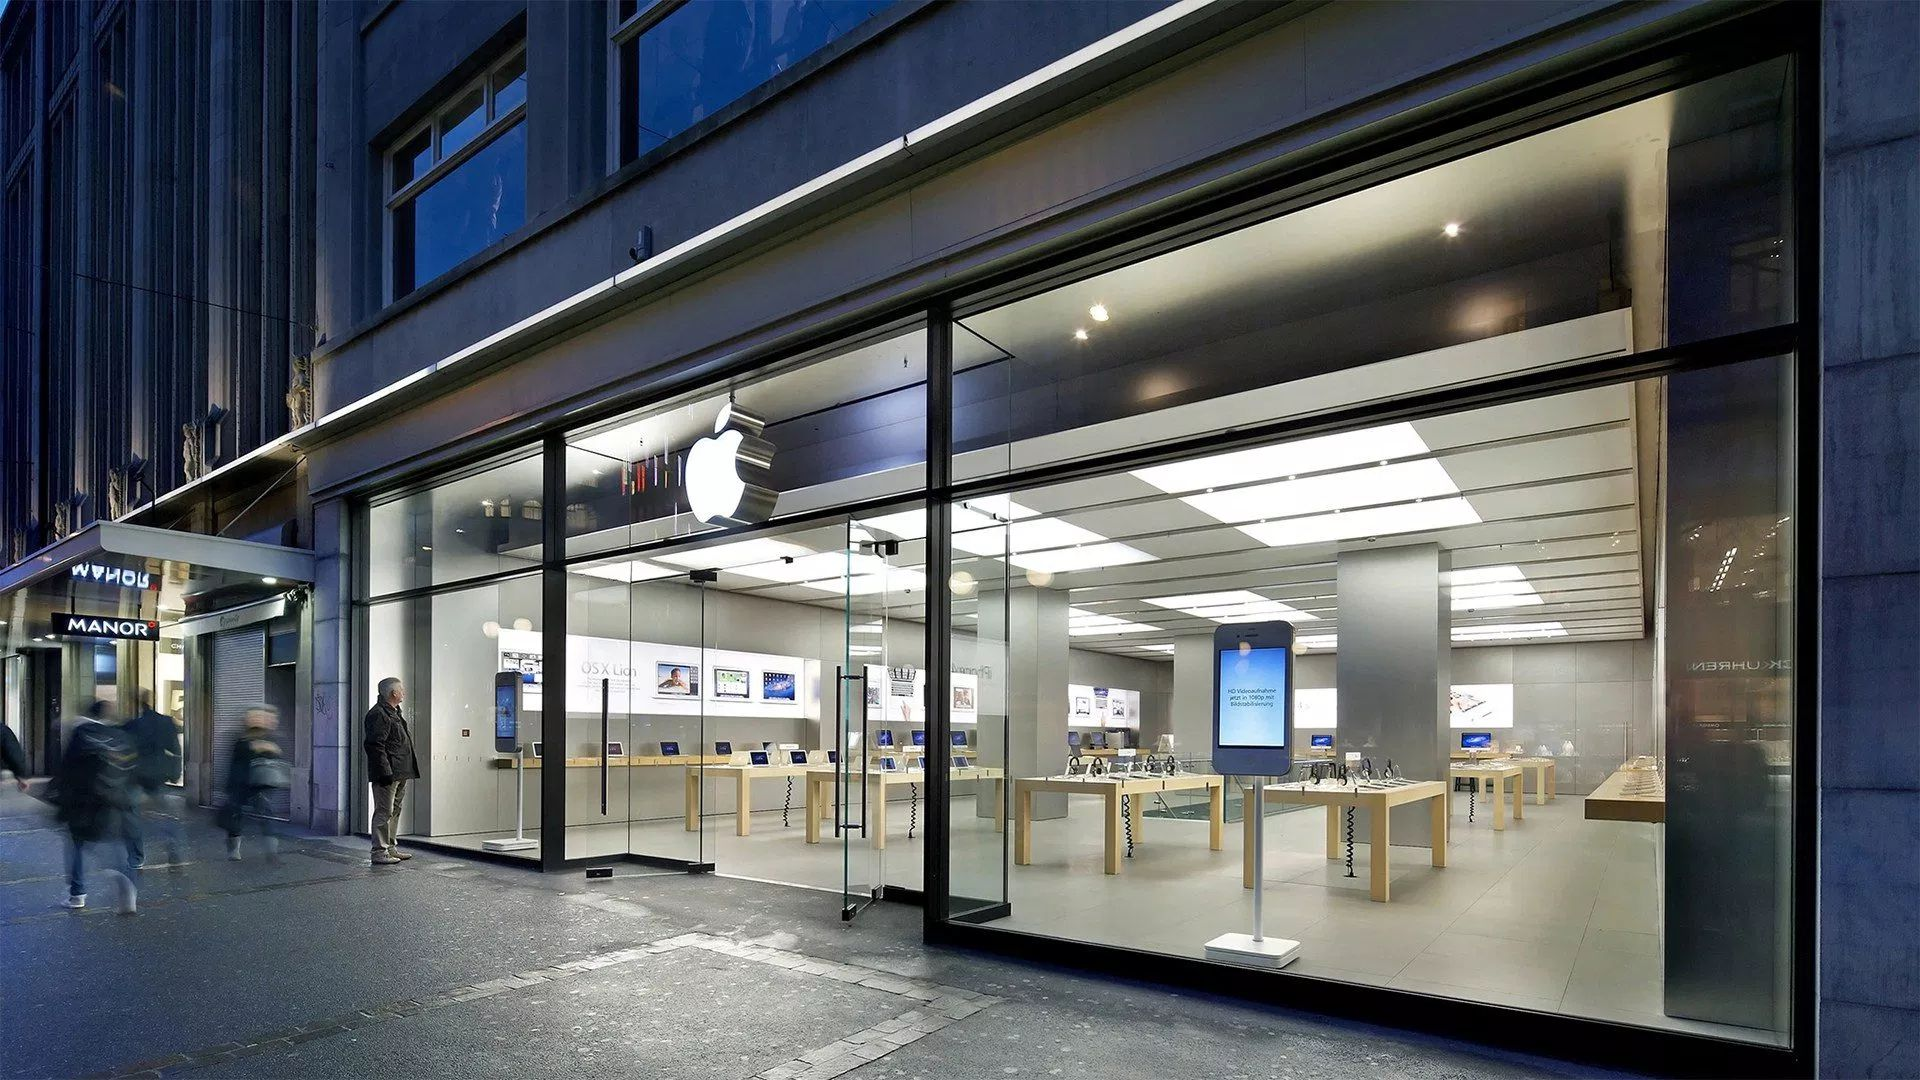 Switzerland's Bahnhofstrasse Apple Store Relocating on August 31st